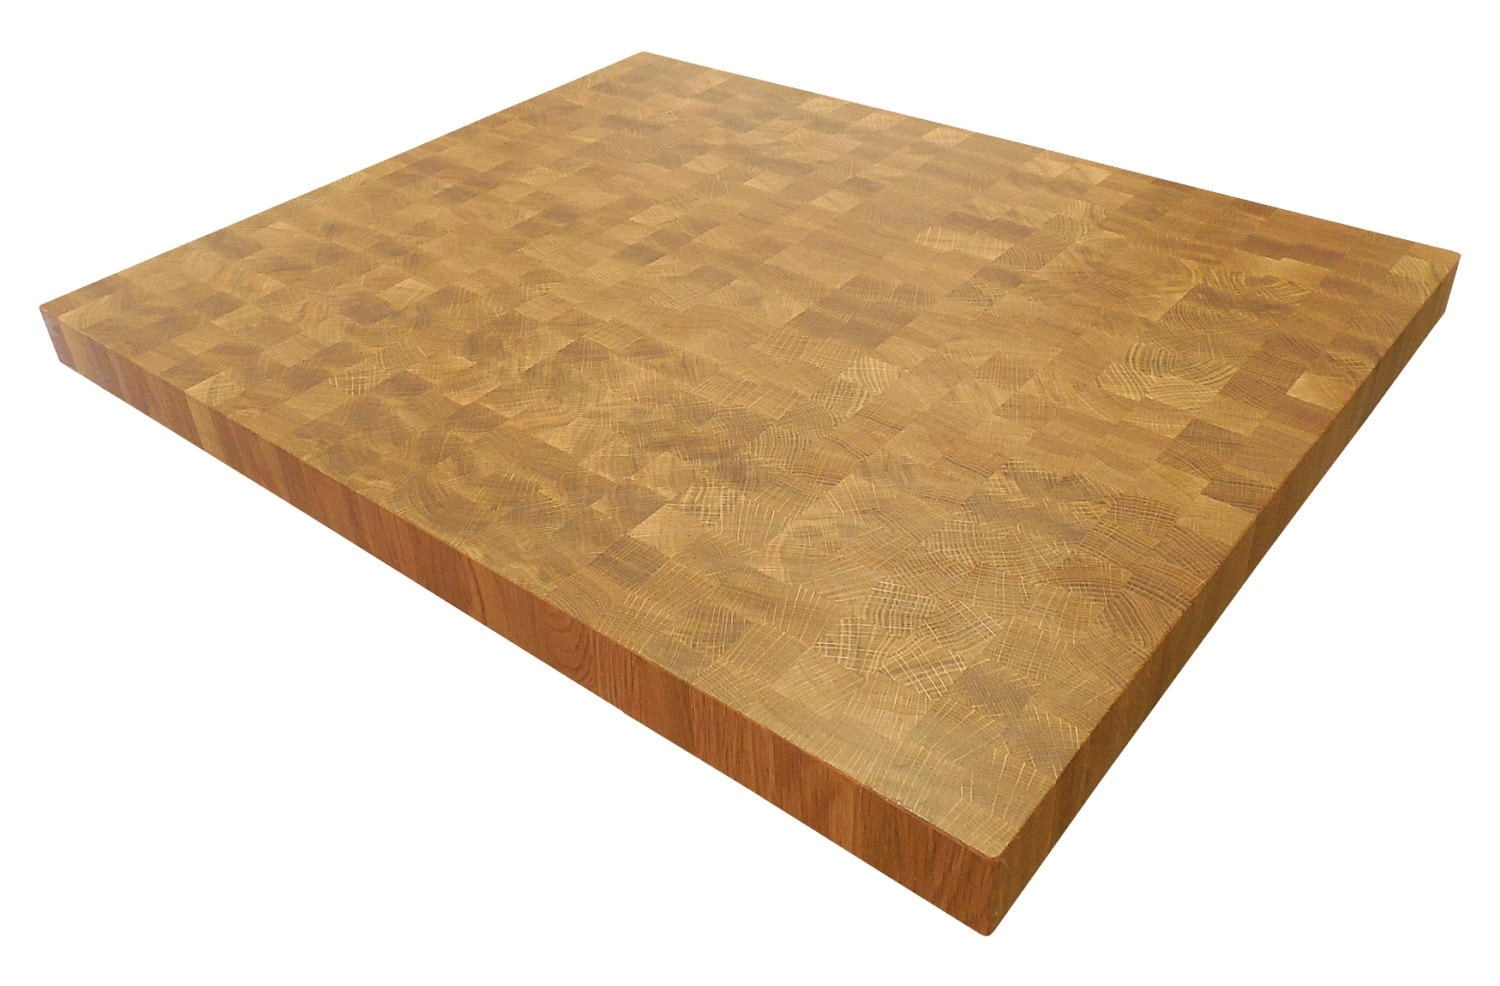 End Grain White Oak Butcher Block Countertop Island